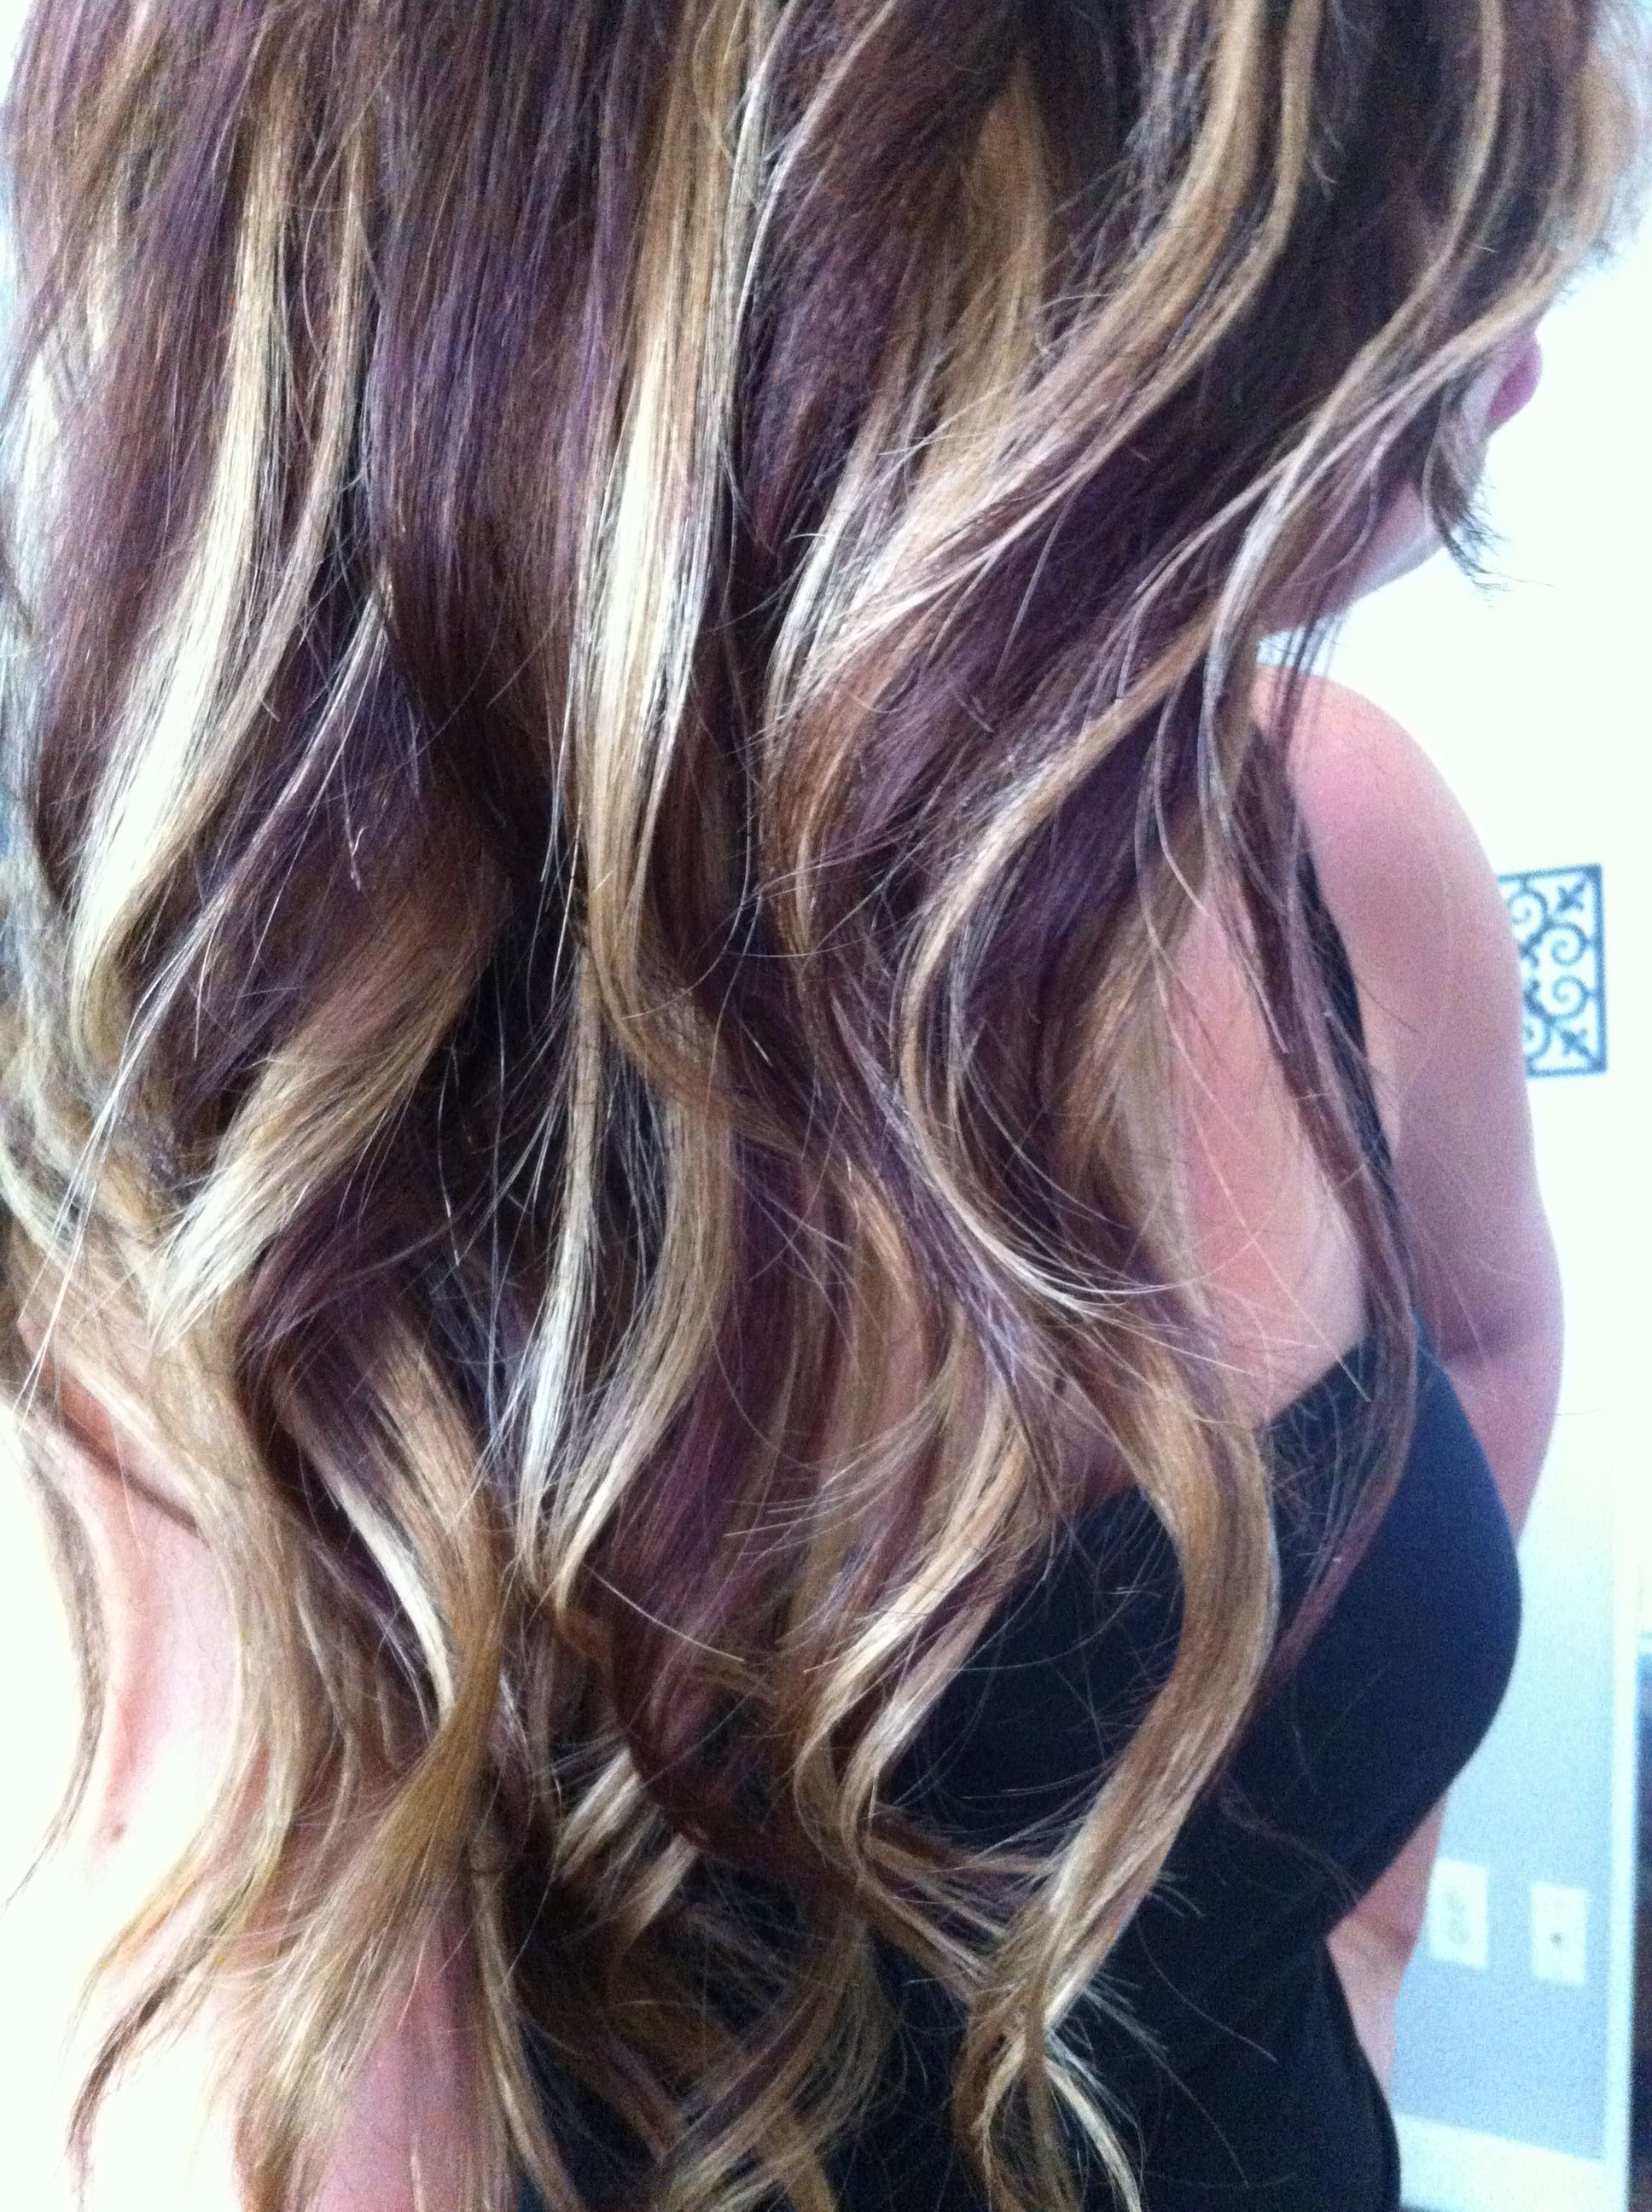 My fall time hair golden brown with caramel highlights added more